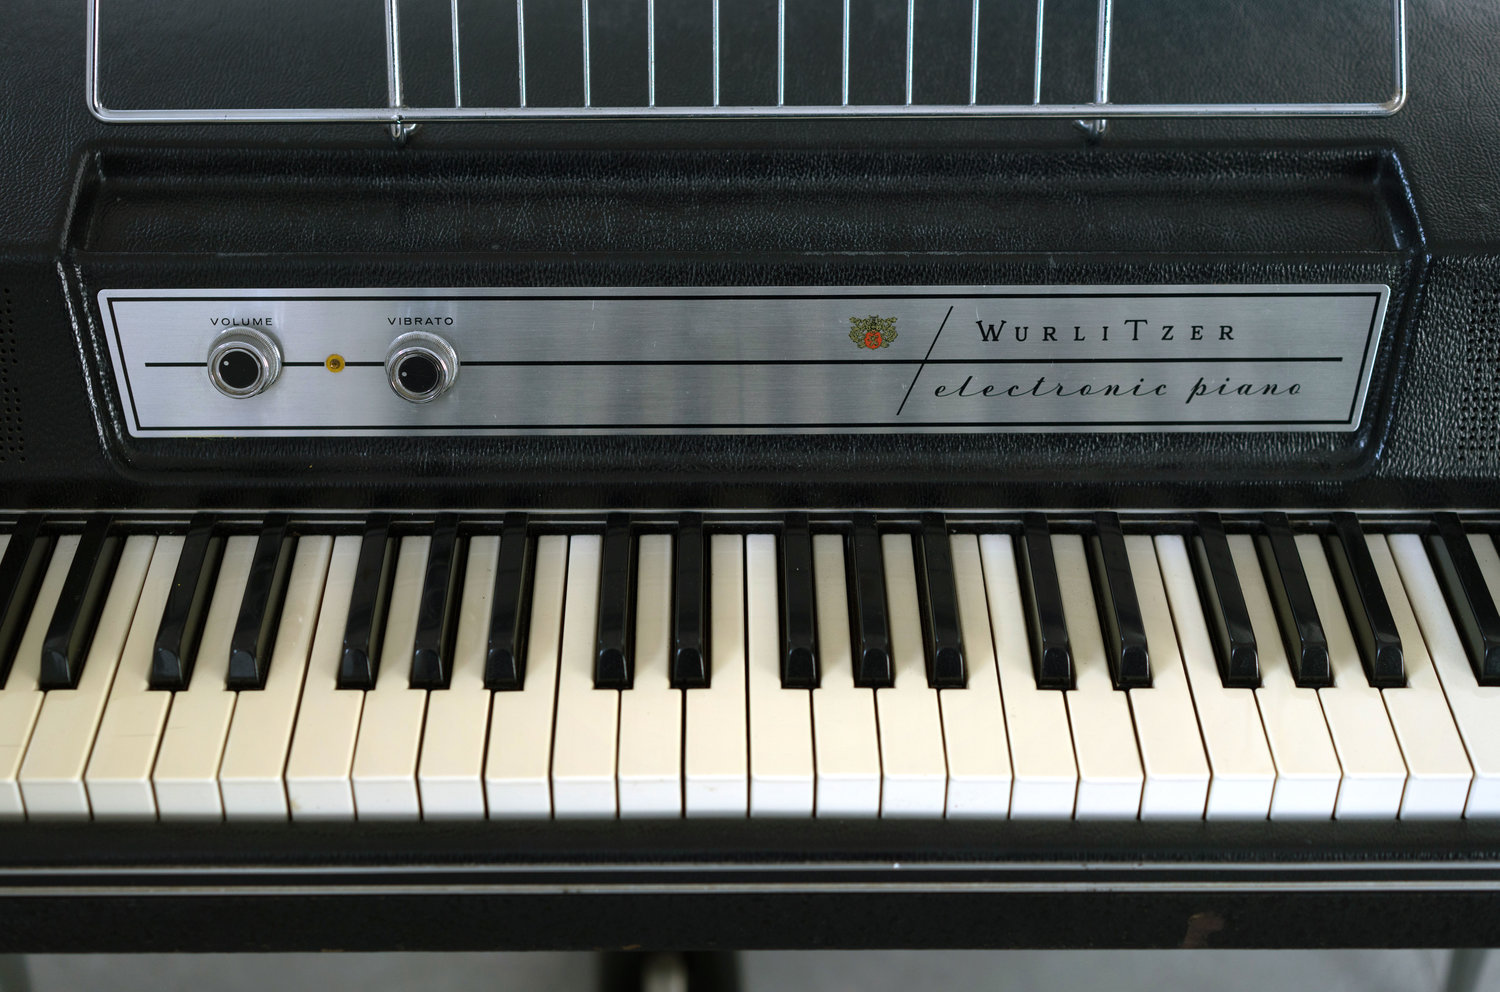 How Does a Wurlitzer Electronic Piano Work?